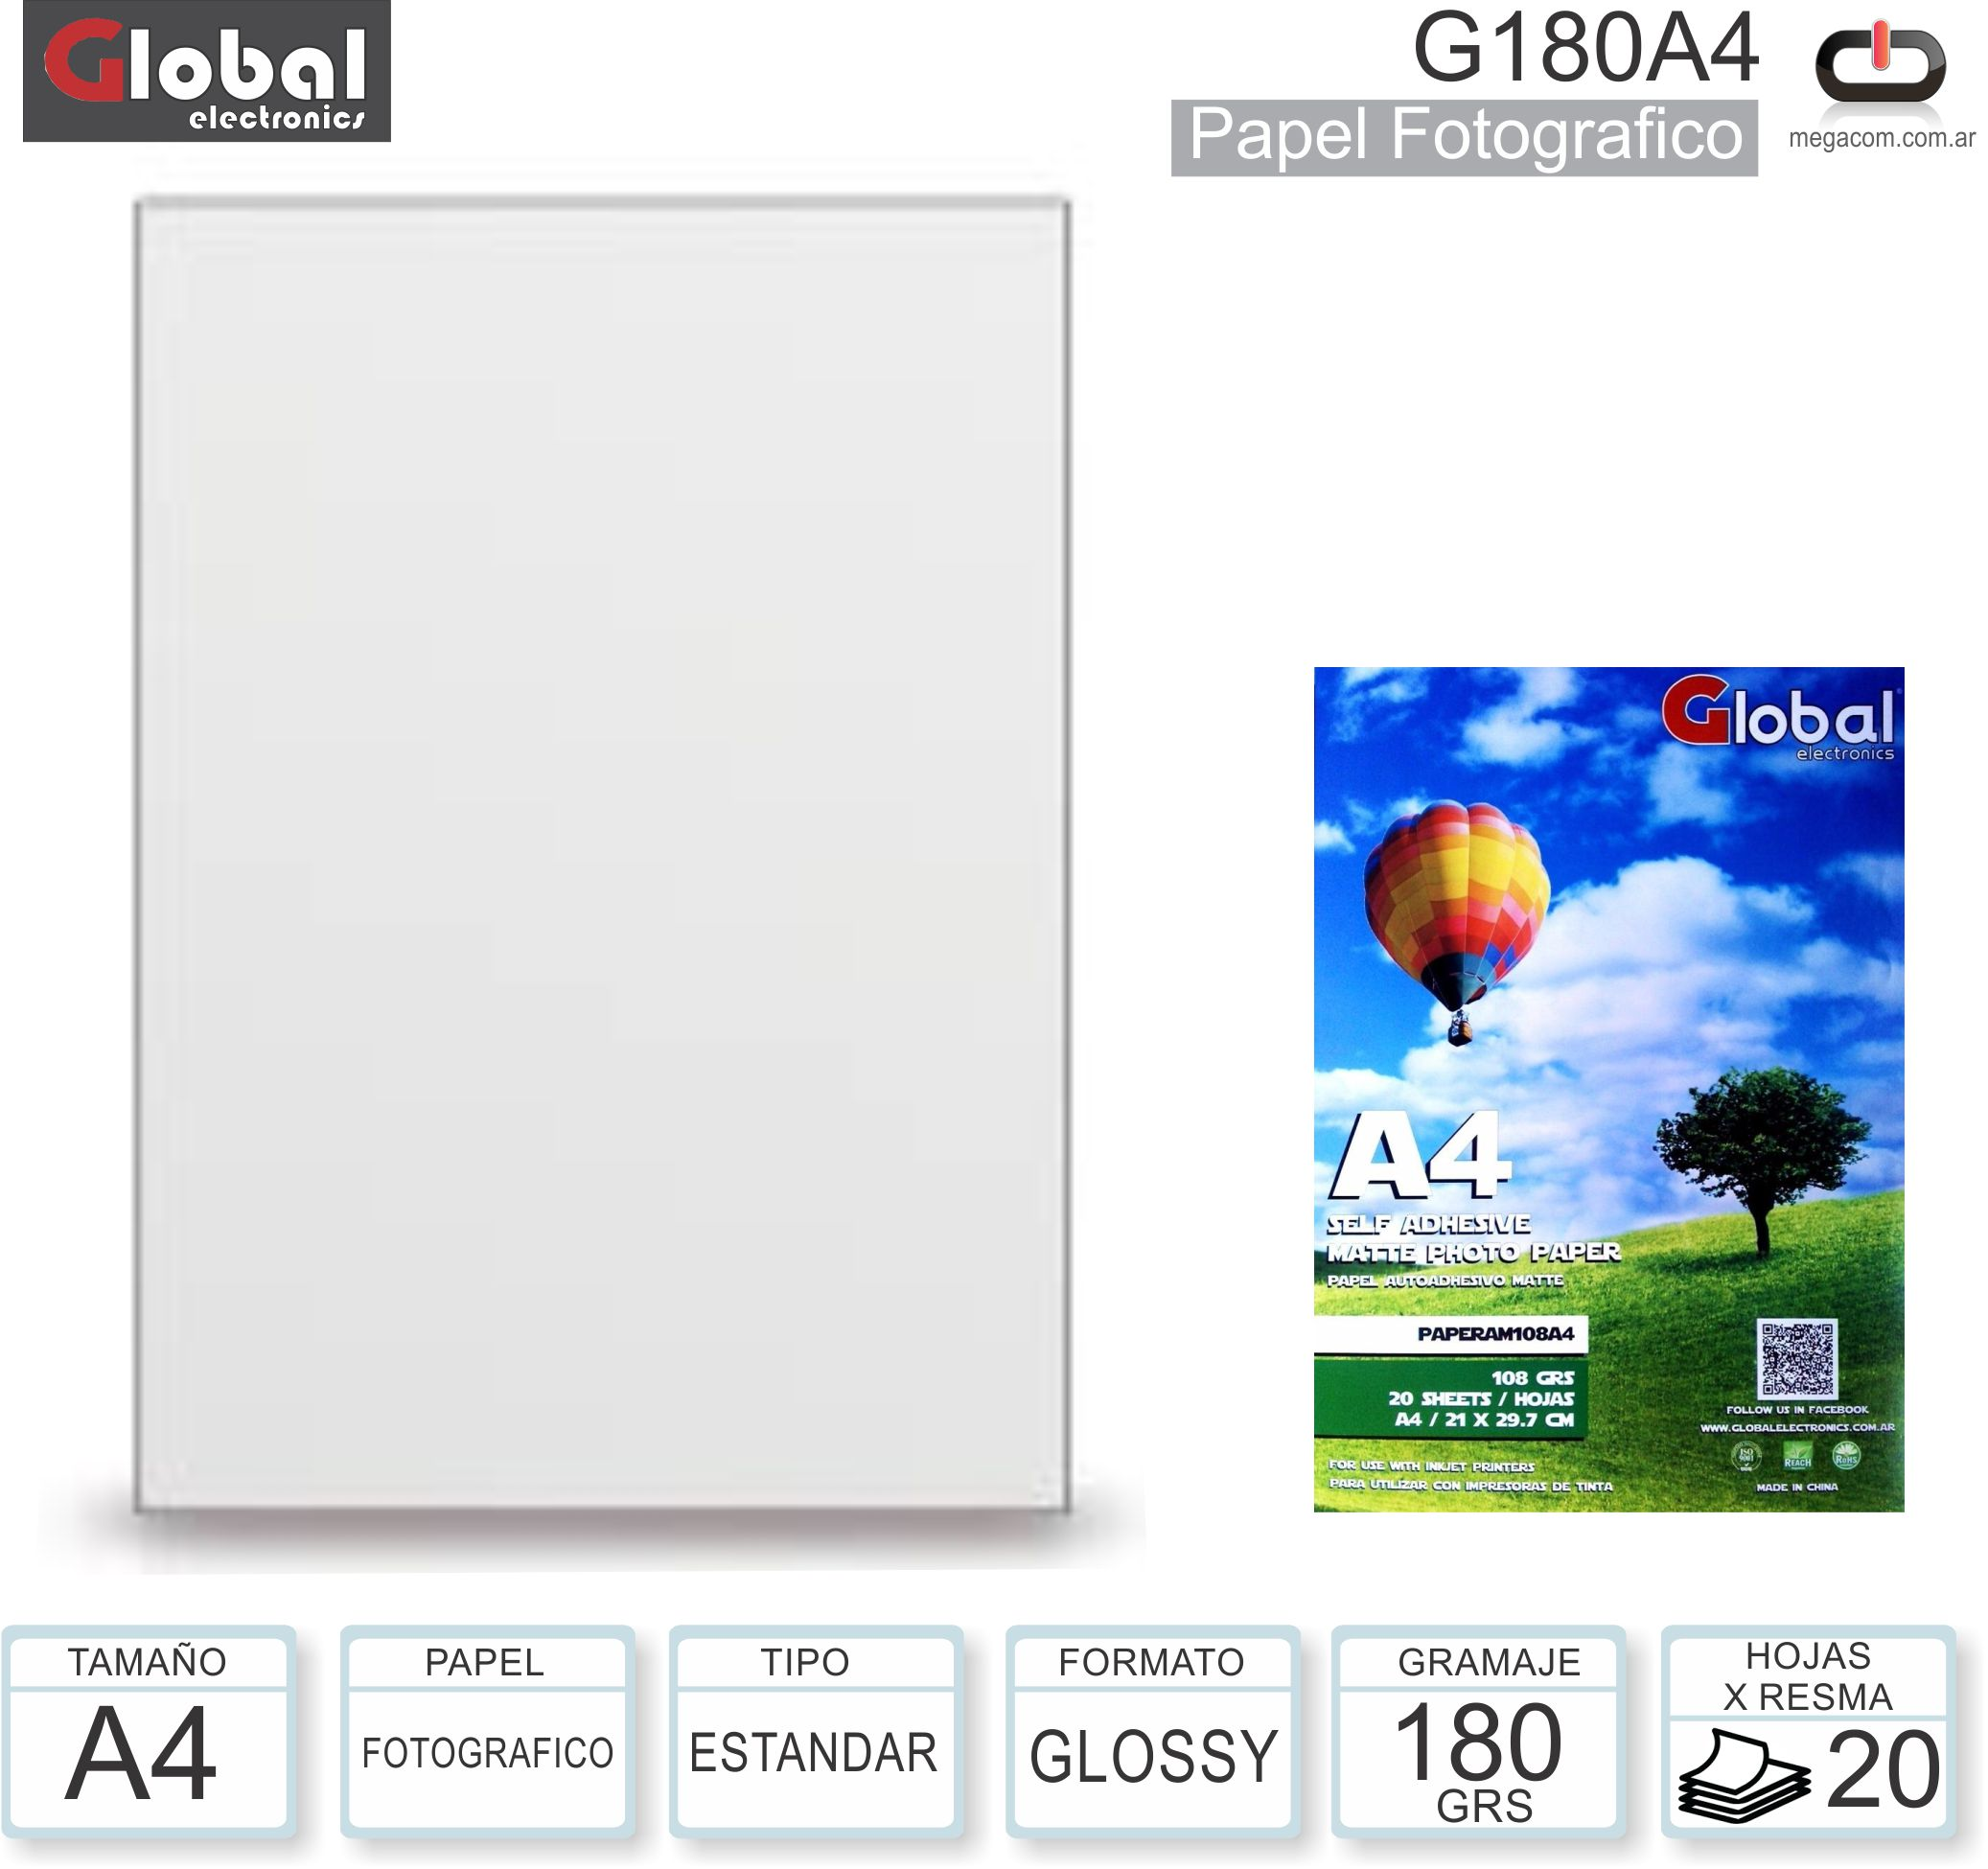 Papel A4 Glossy 180G/020H GLOBAL G180A4